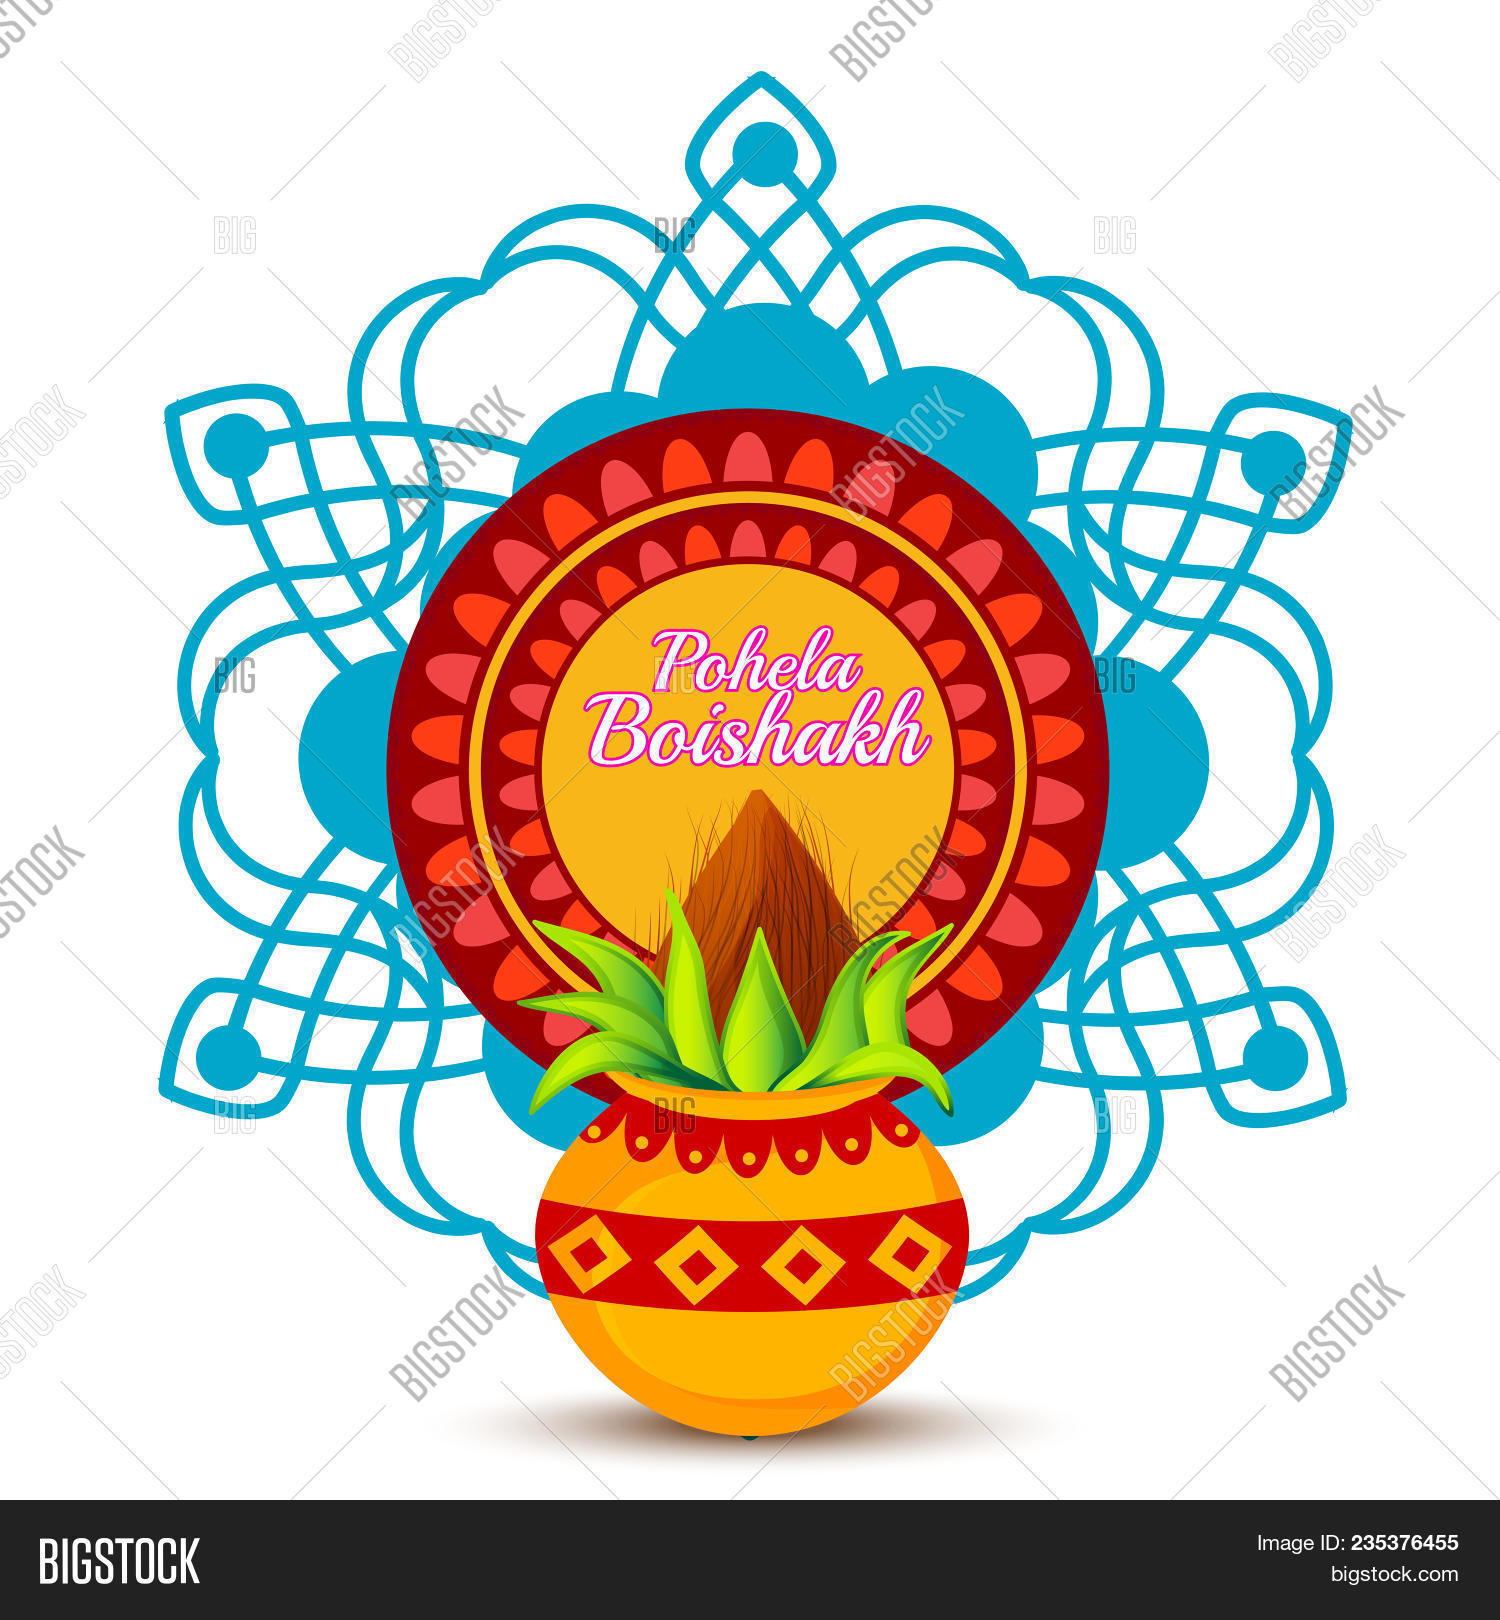 poster or banner of bengali new year pohela boishakh greeting card background